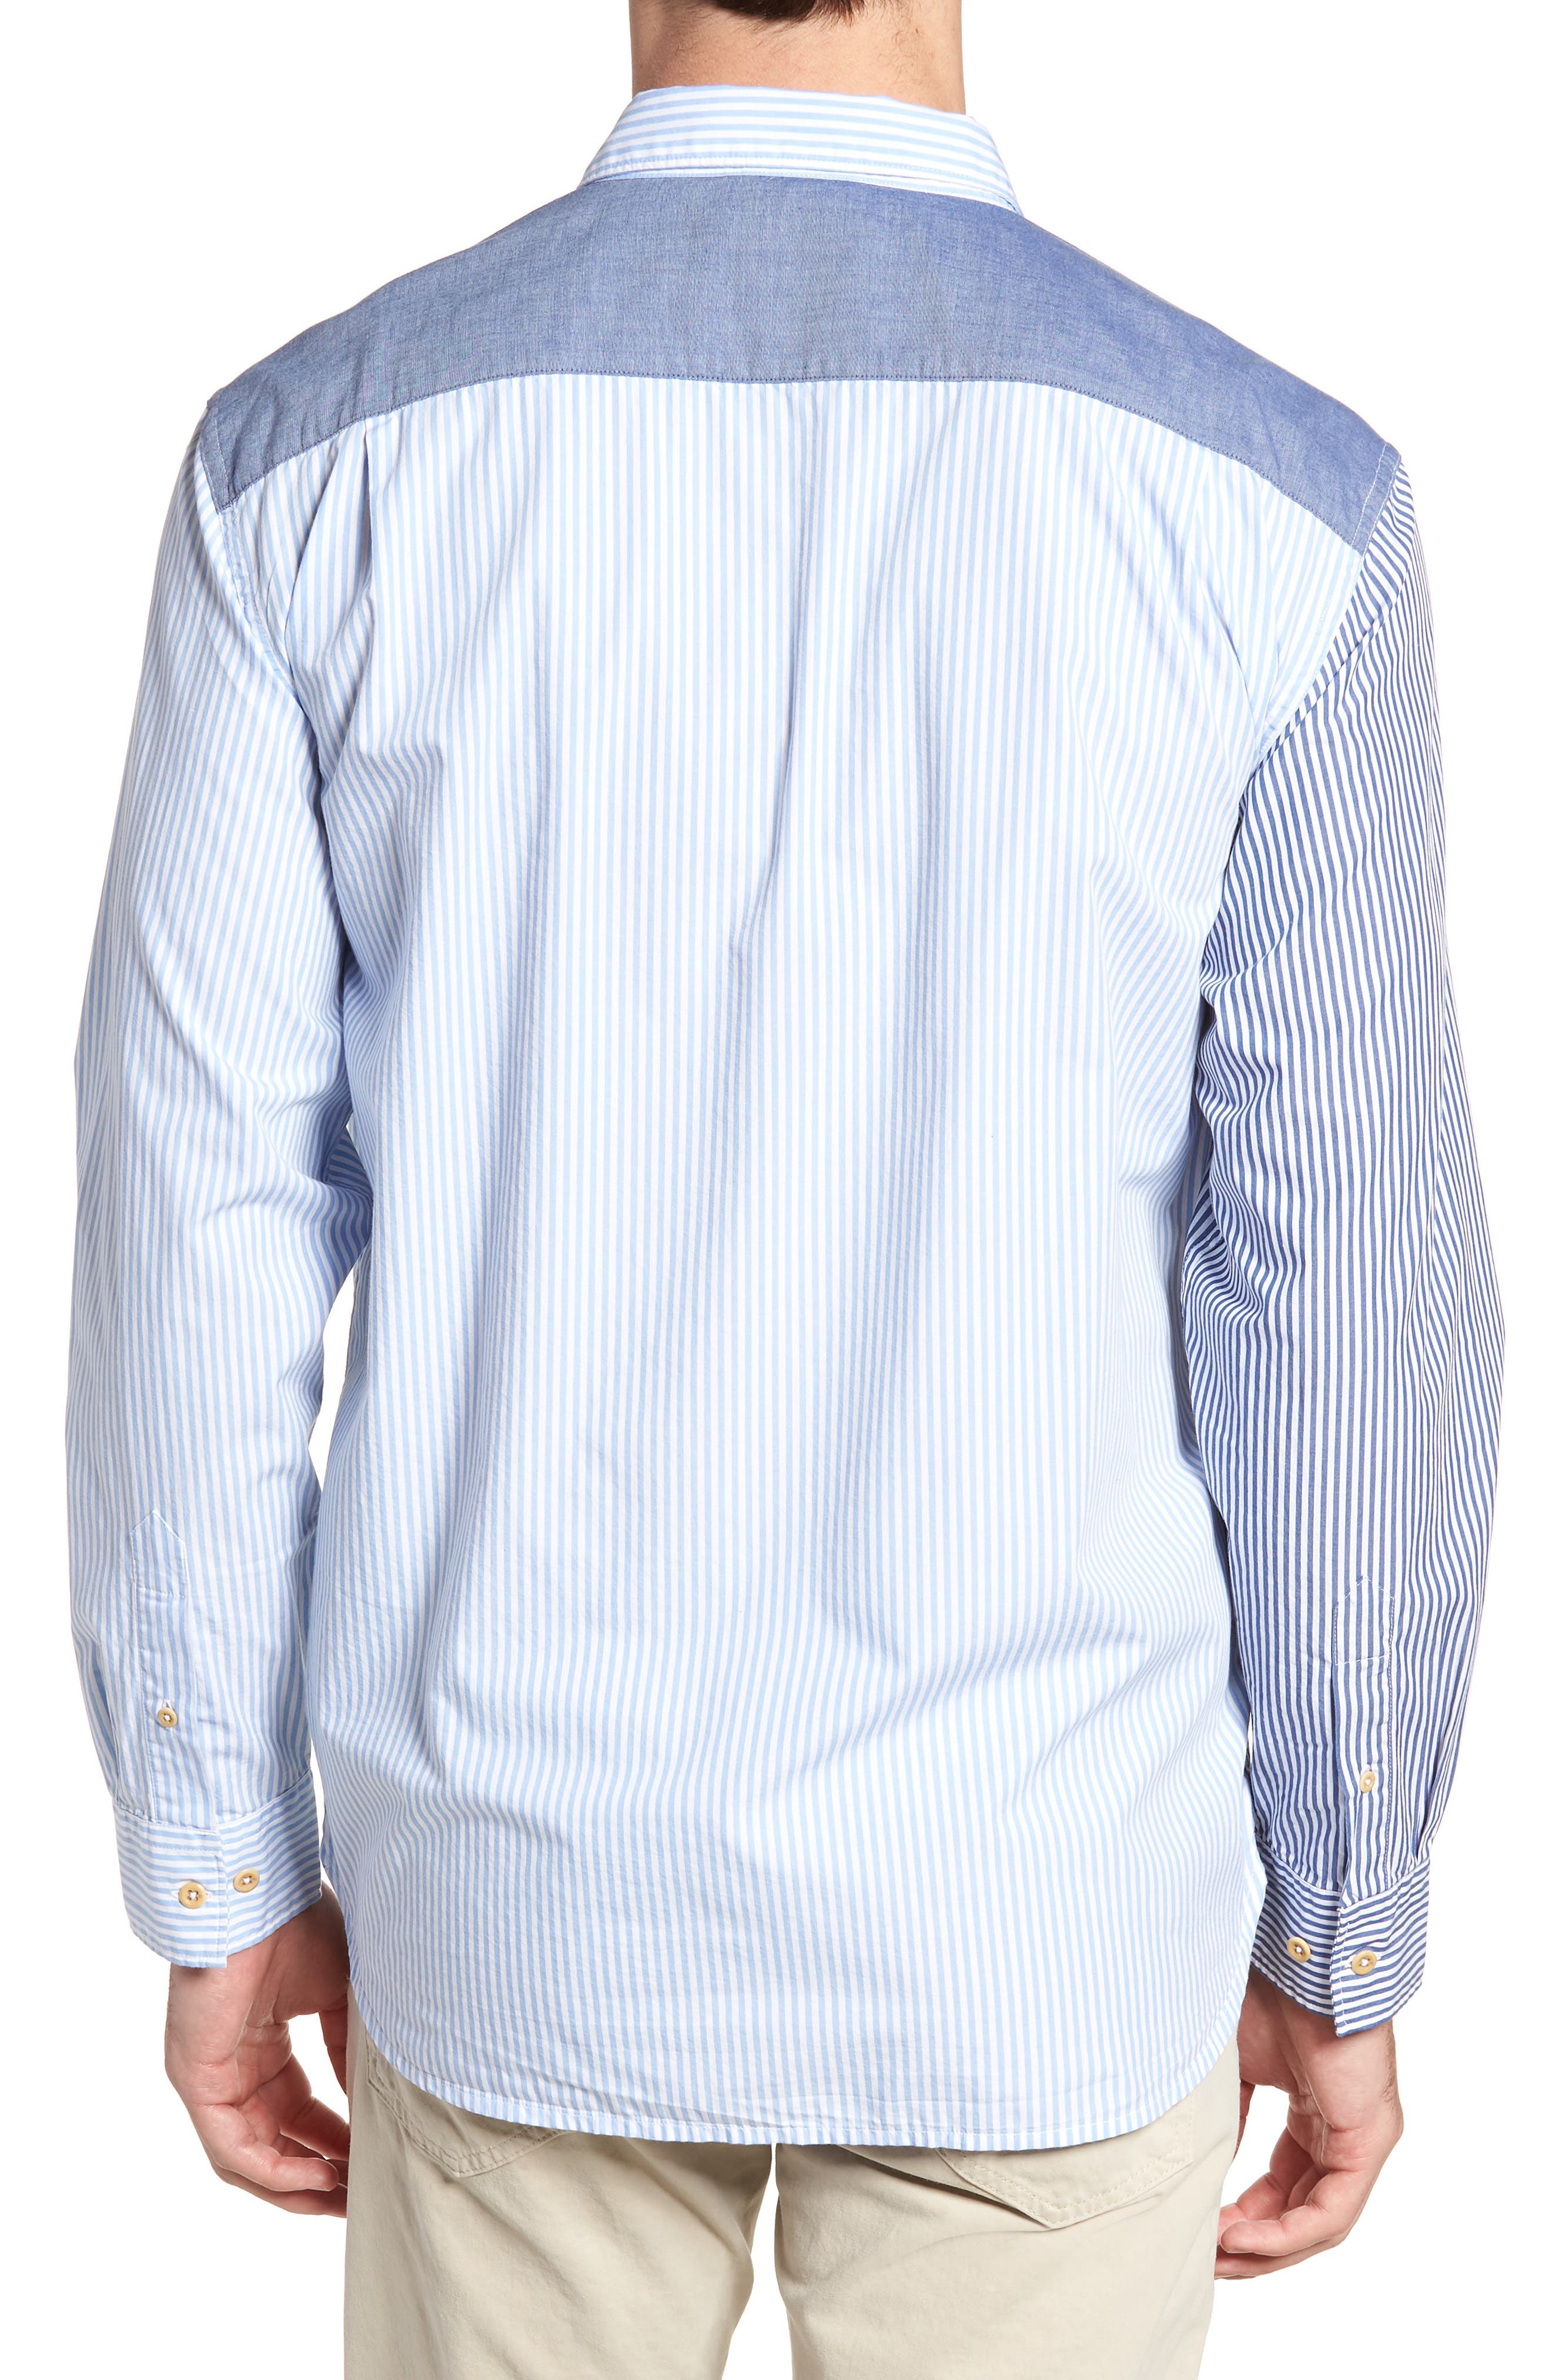 Patchwork Relaxed Fit Sport Shirt,                             Alternate thumbnail 2, color,                             Blue Blood